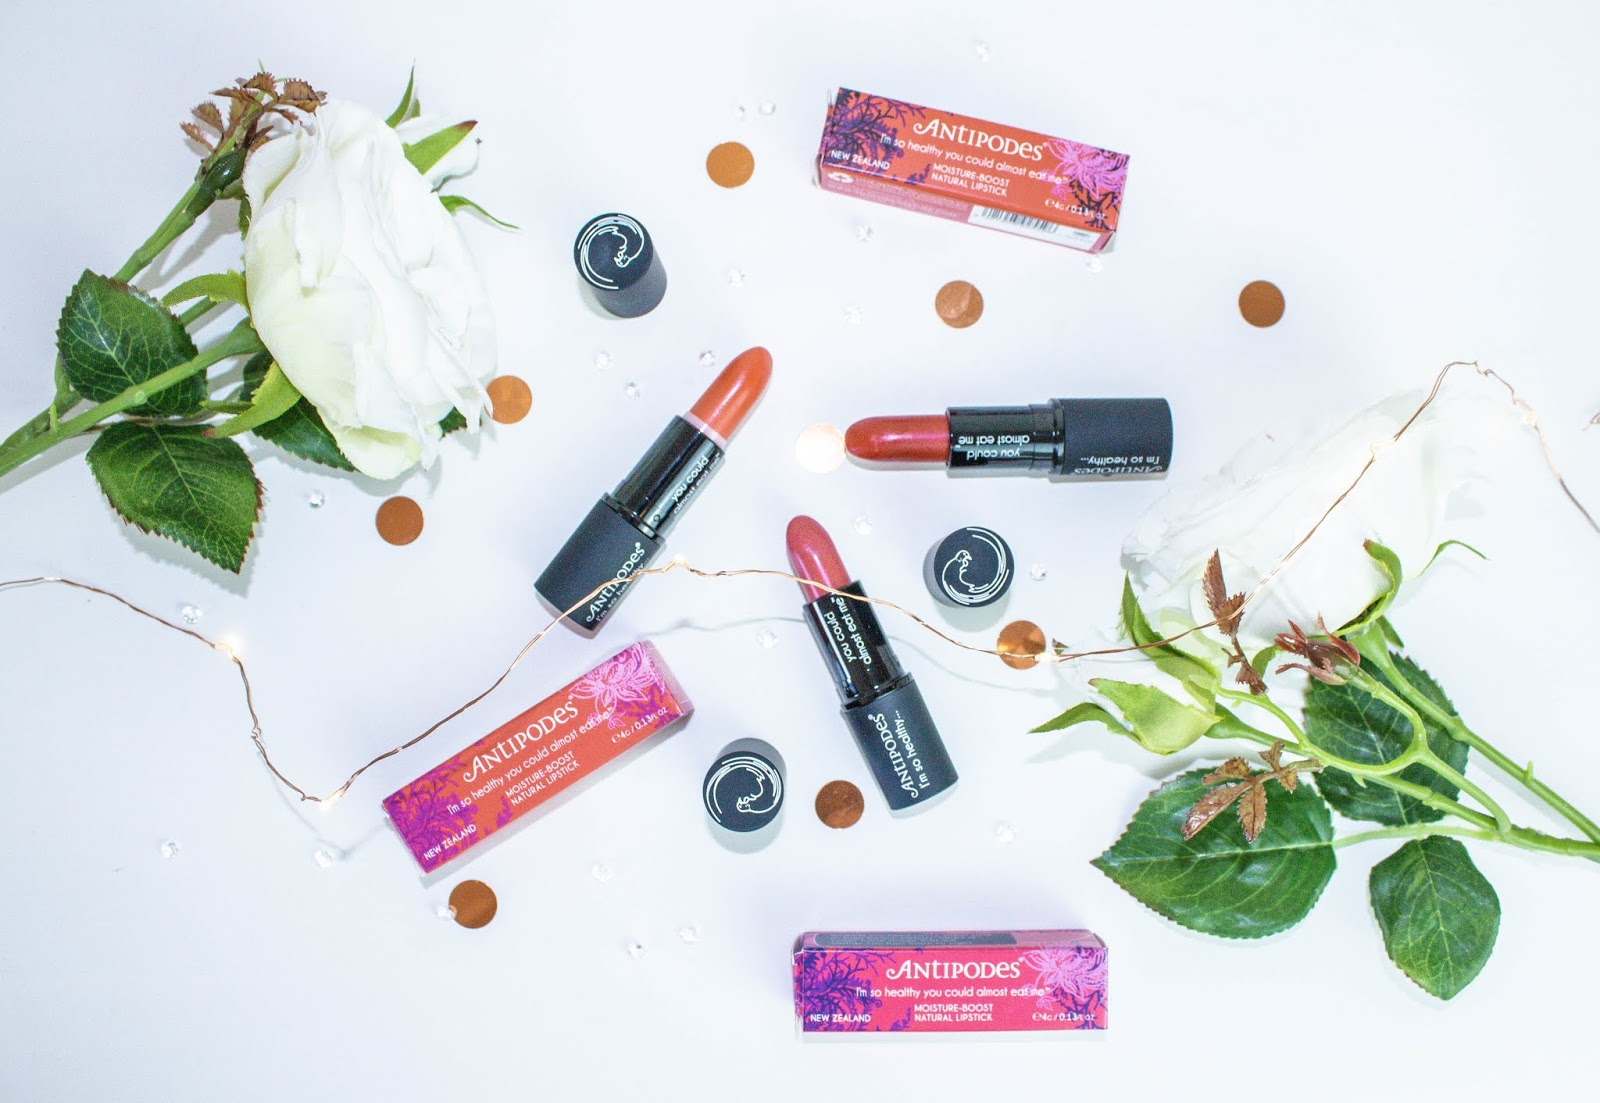 Antipodes Healthy Lipsticks Review